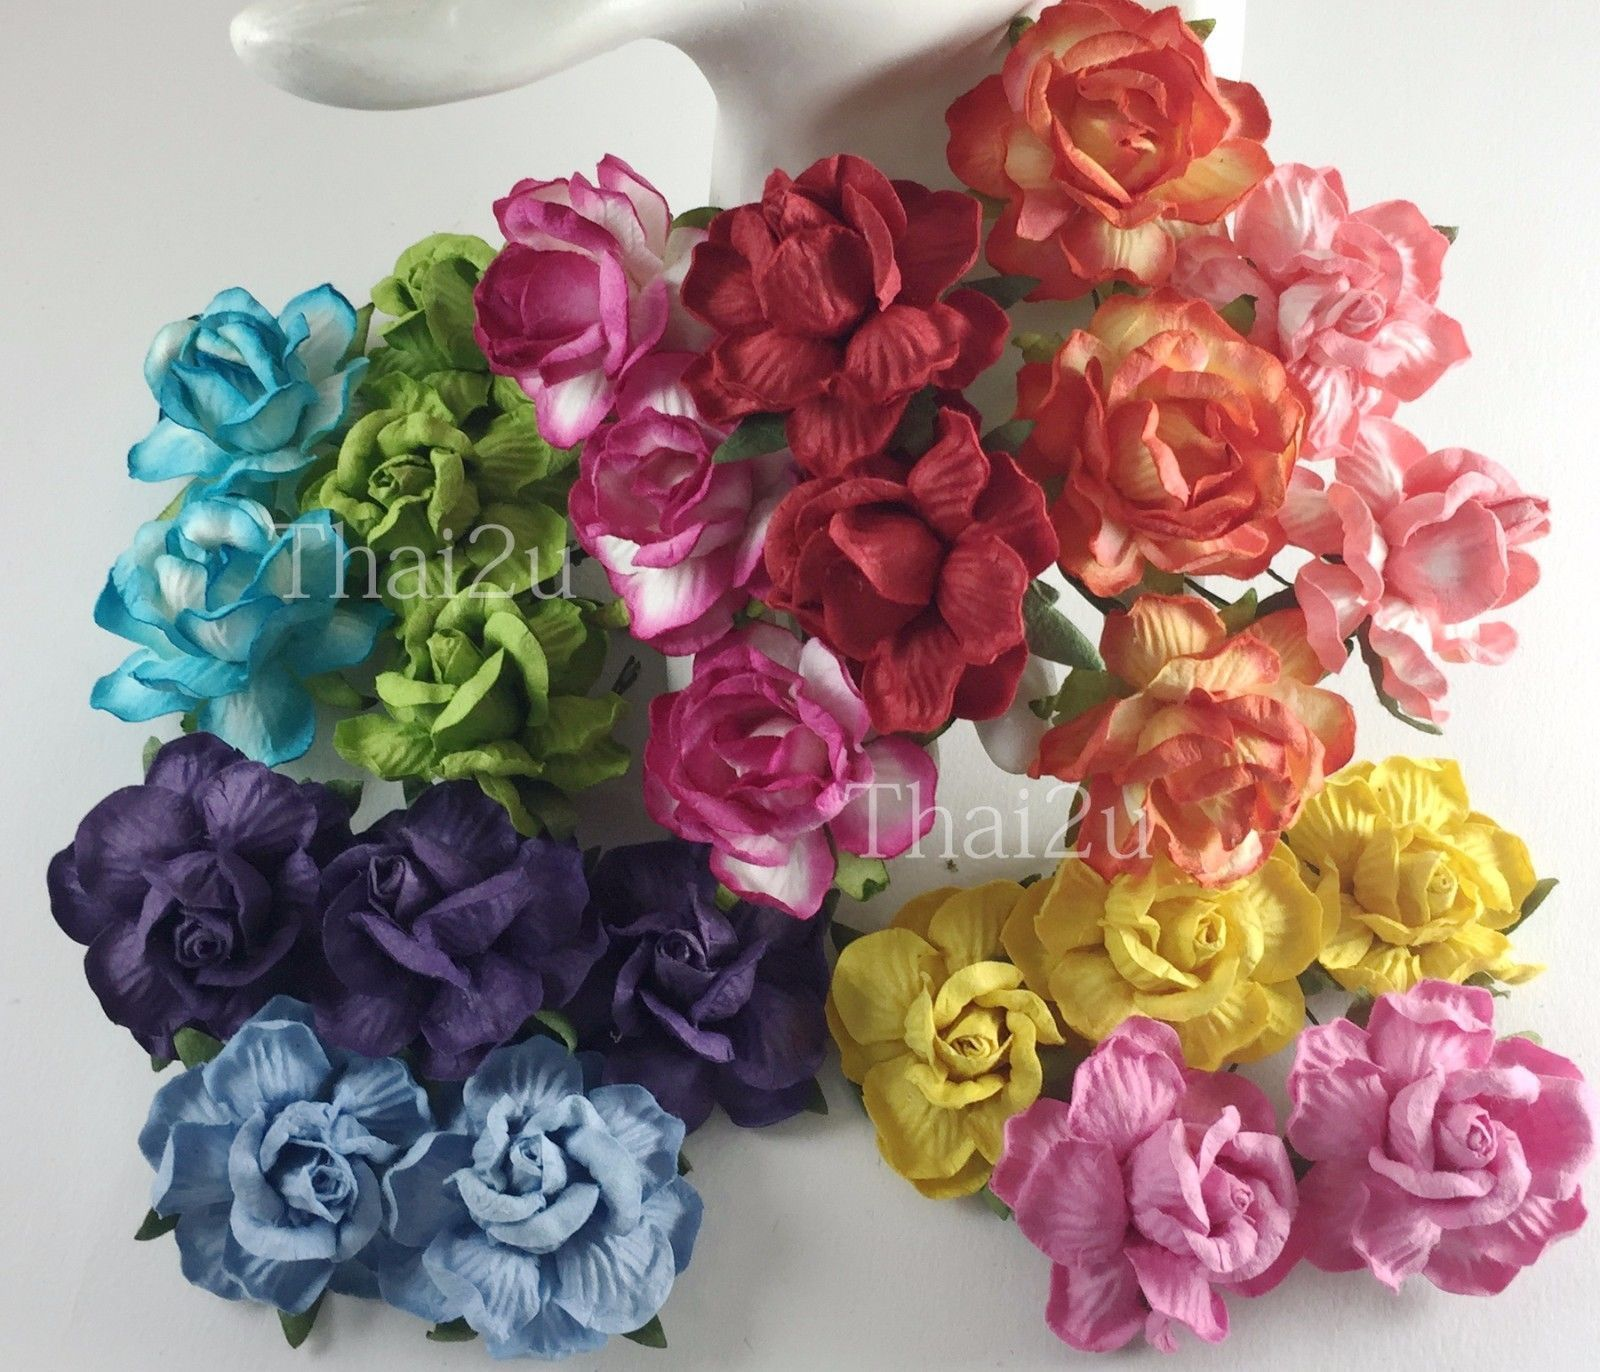 Wedding decorations paper flowers   Large Rainbow Paper Flowers Diy Wedding Decoration Craft